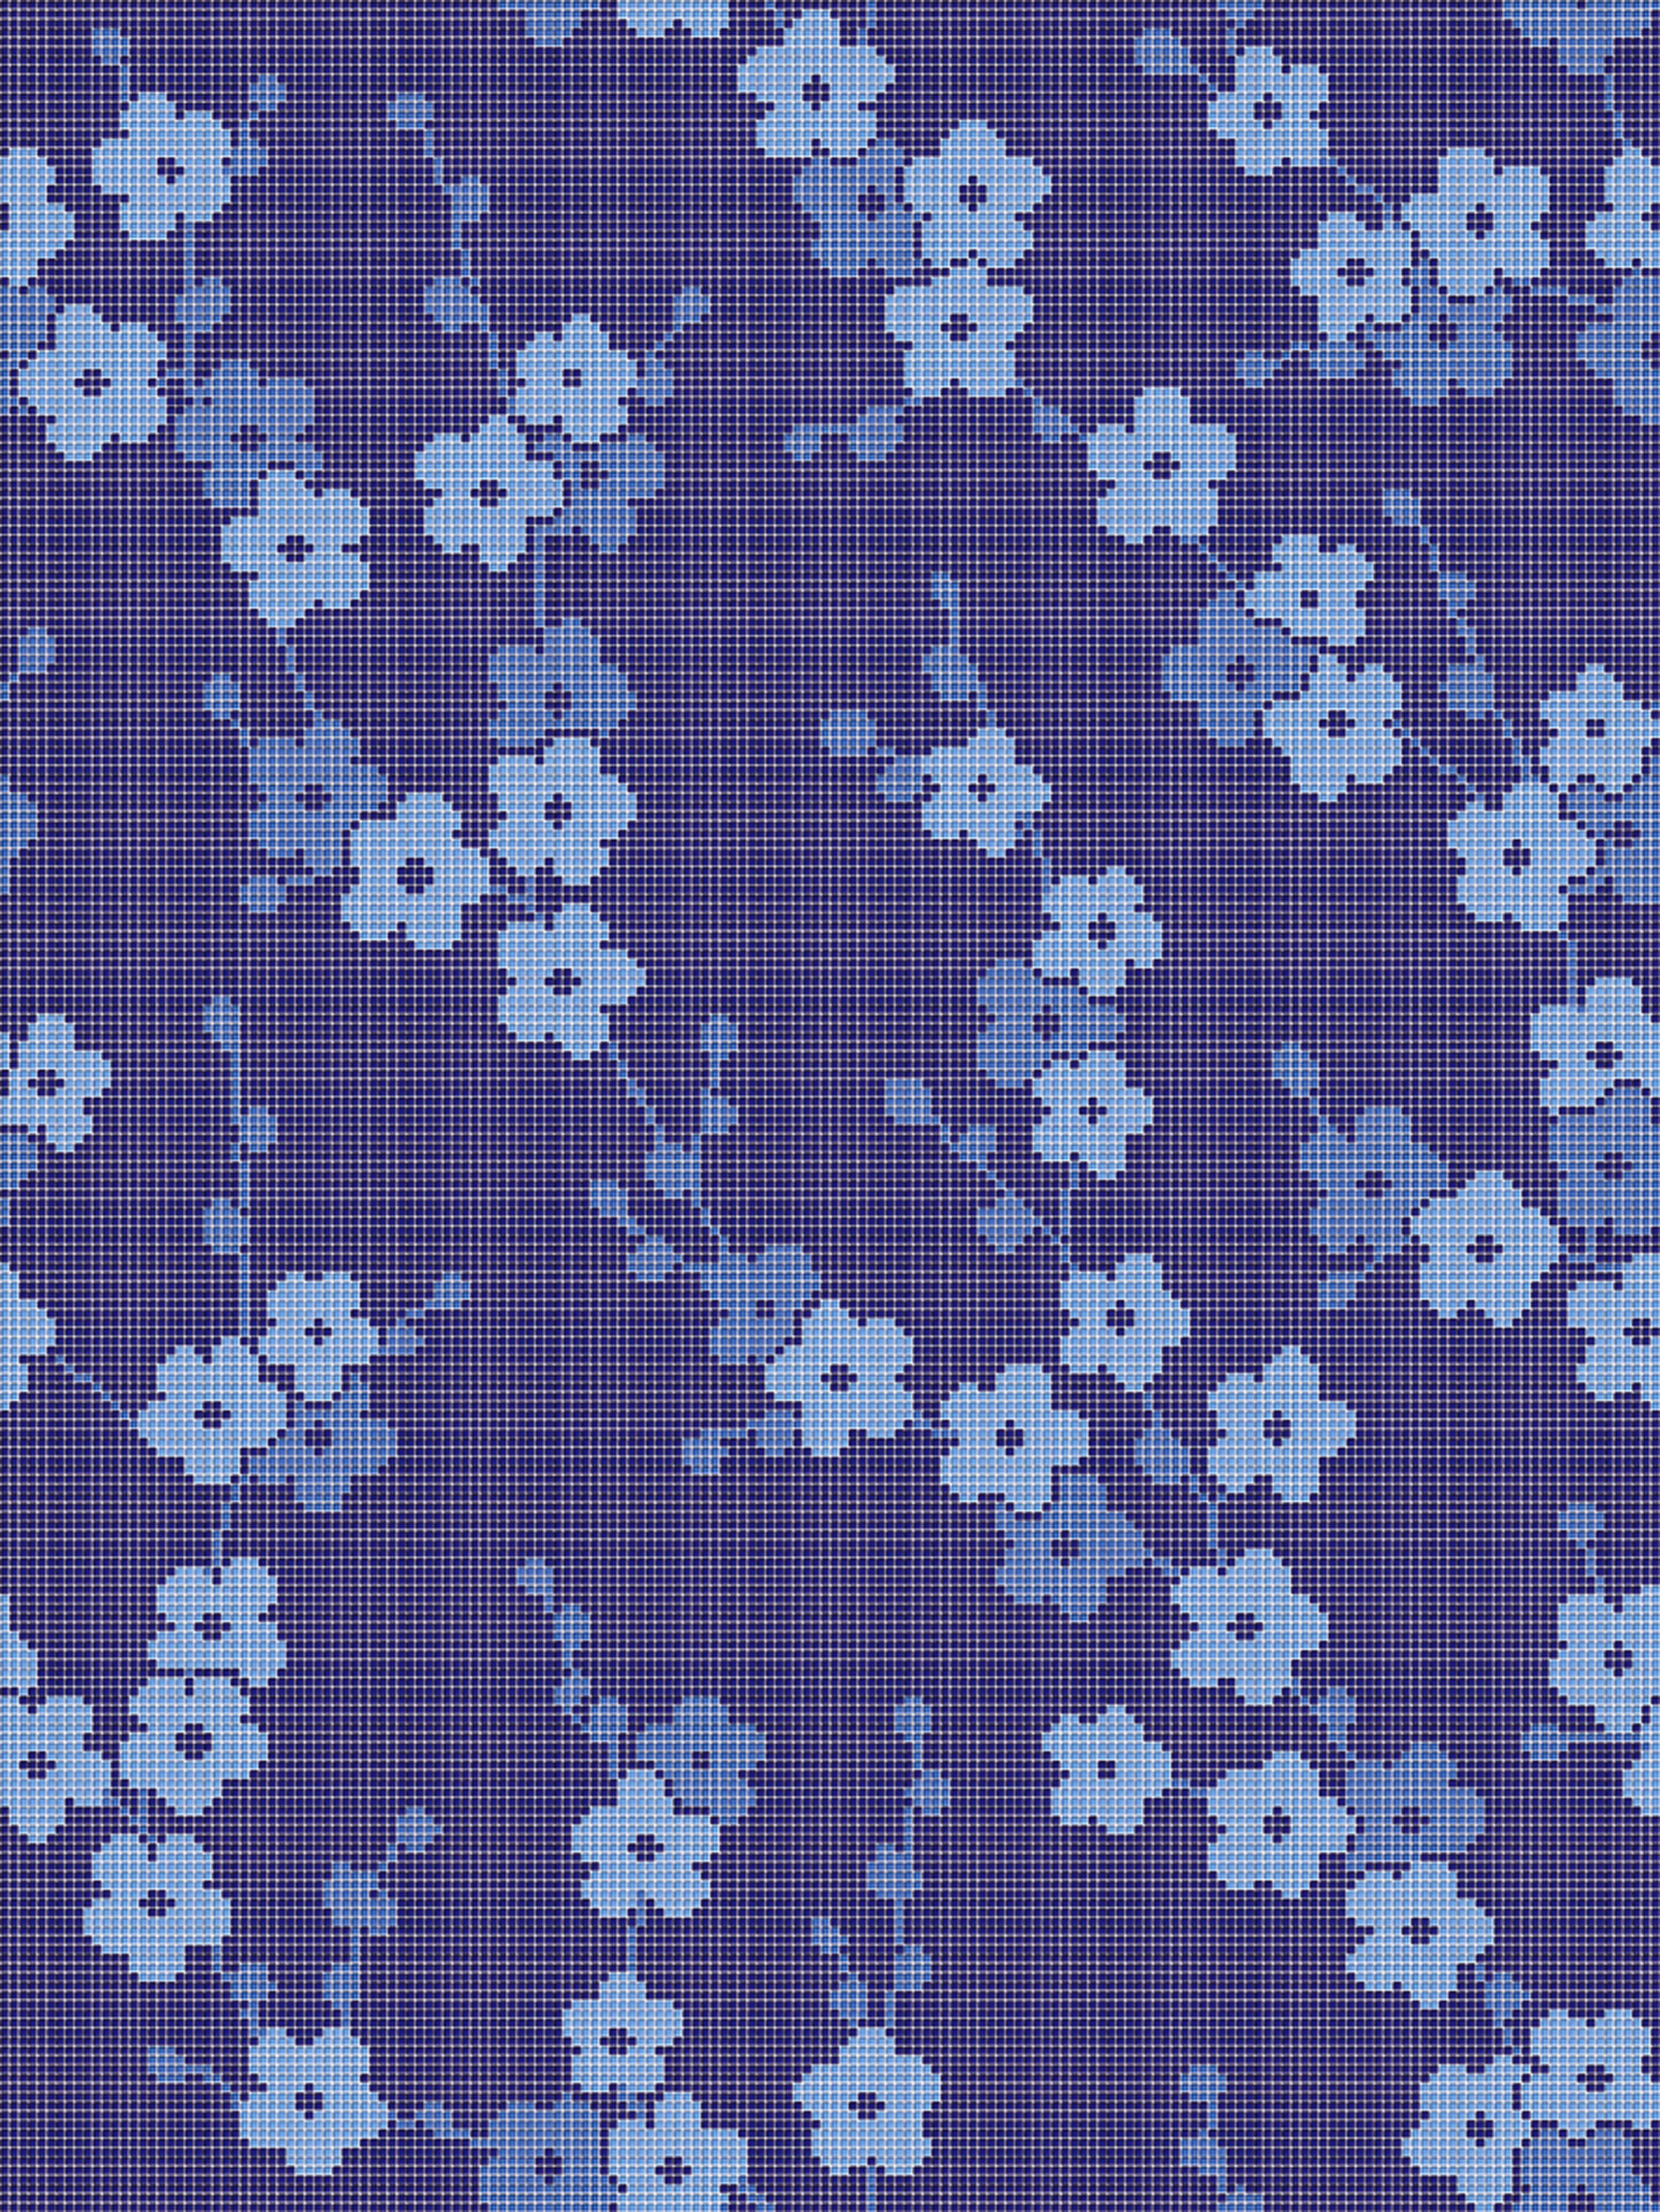 DECOR BLOOMING | CHERRY BLOSSOM BLUE 10X10 - Glass mosaics from ...